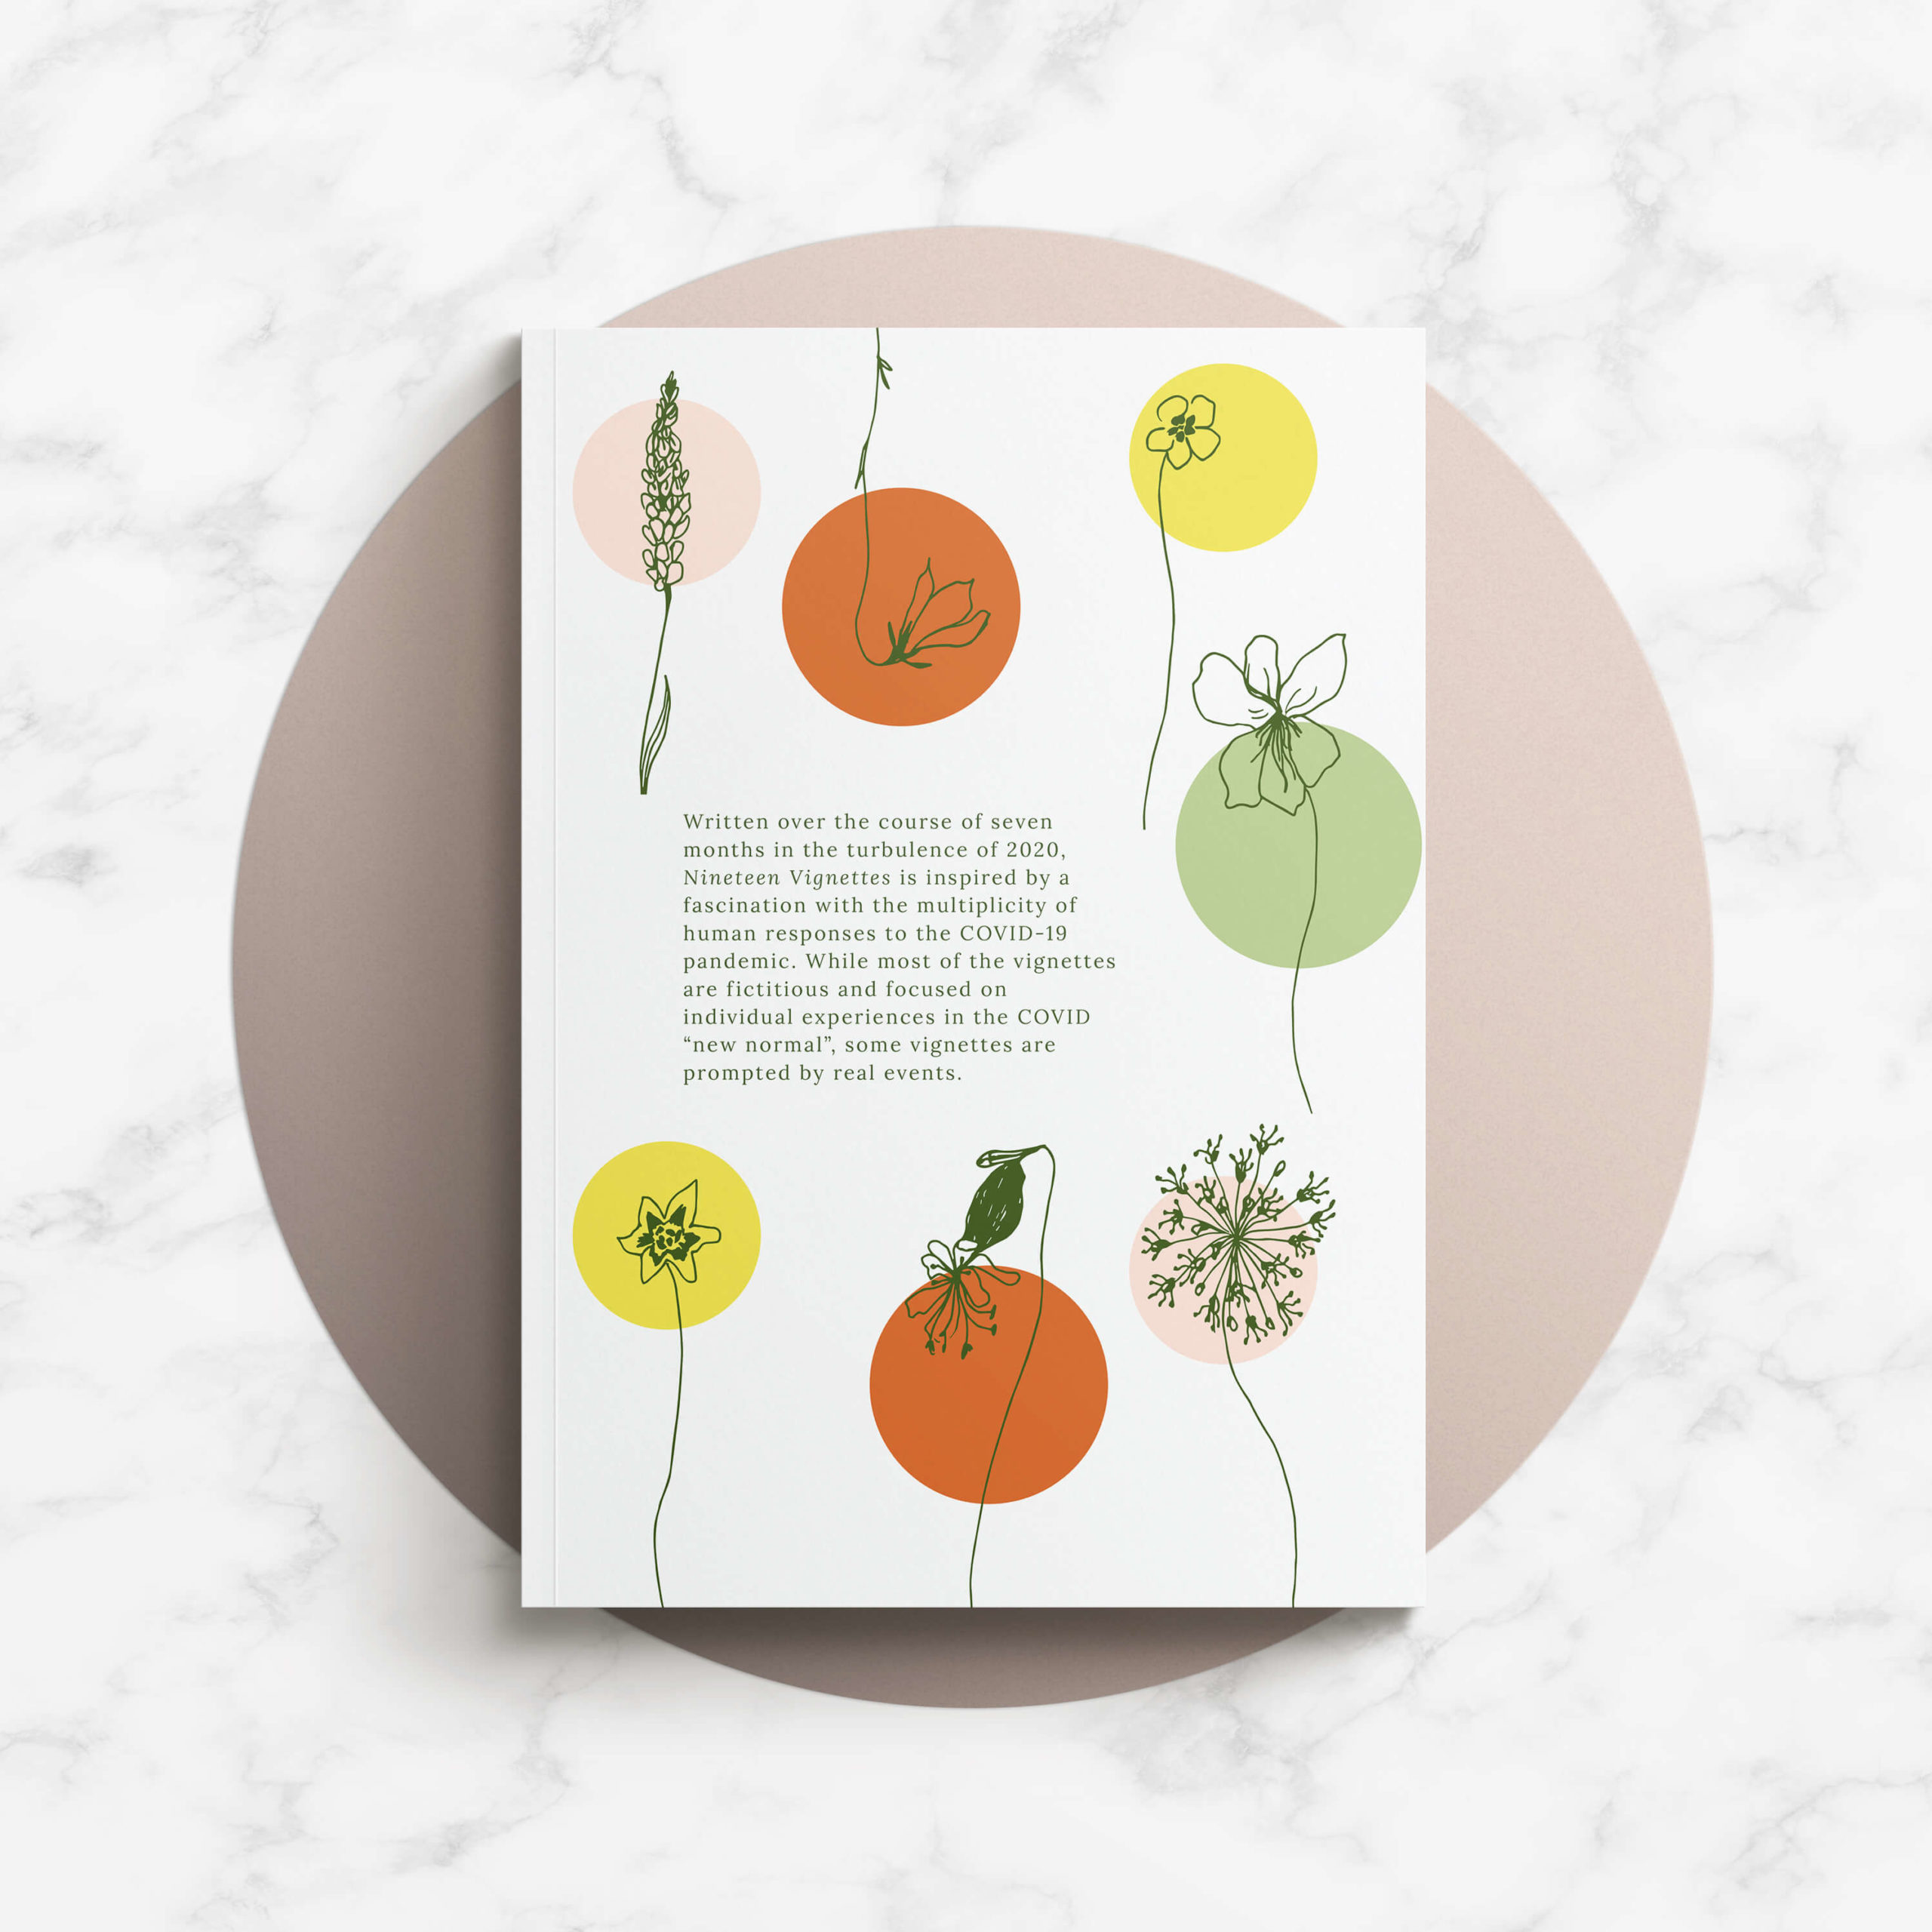 Book back cover design featuring Manitoba wildflowers